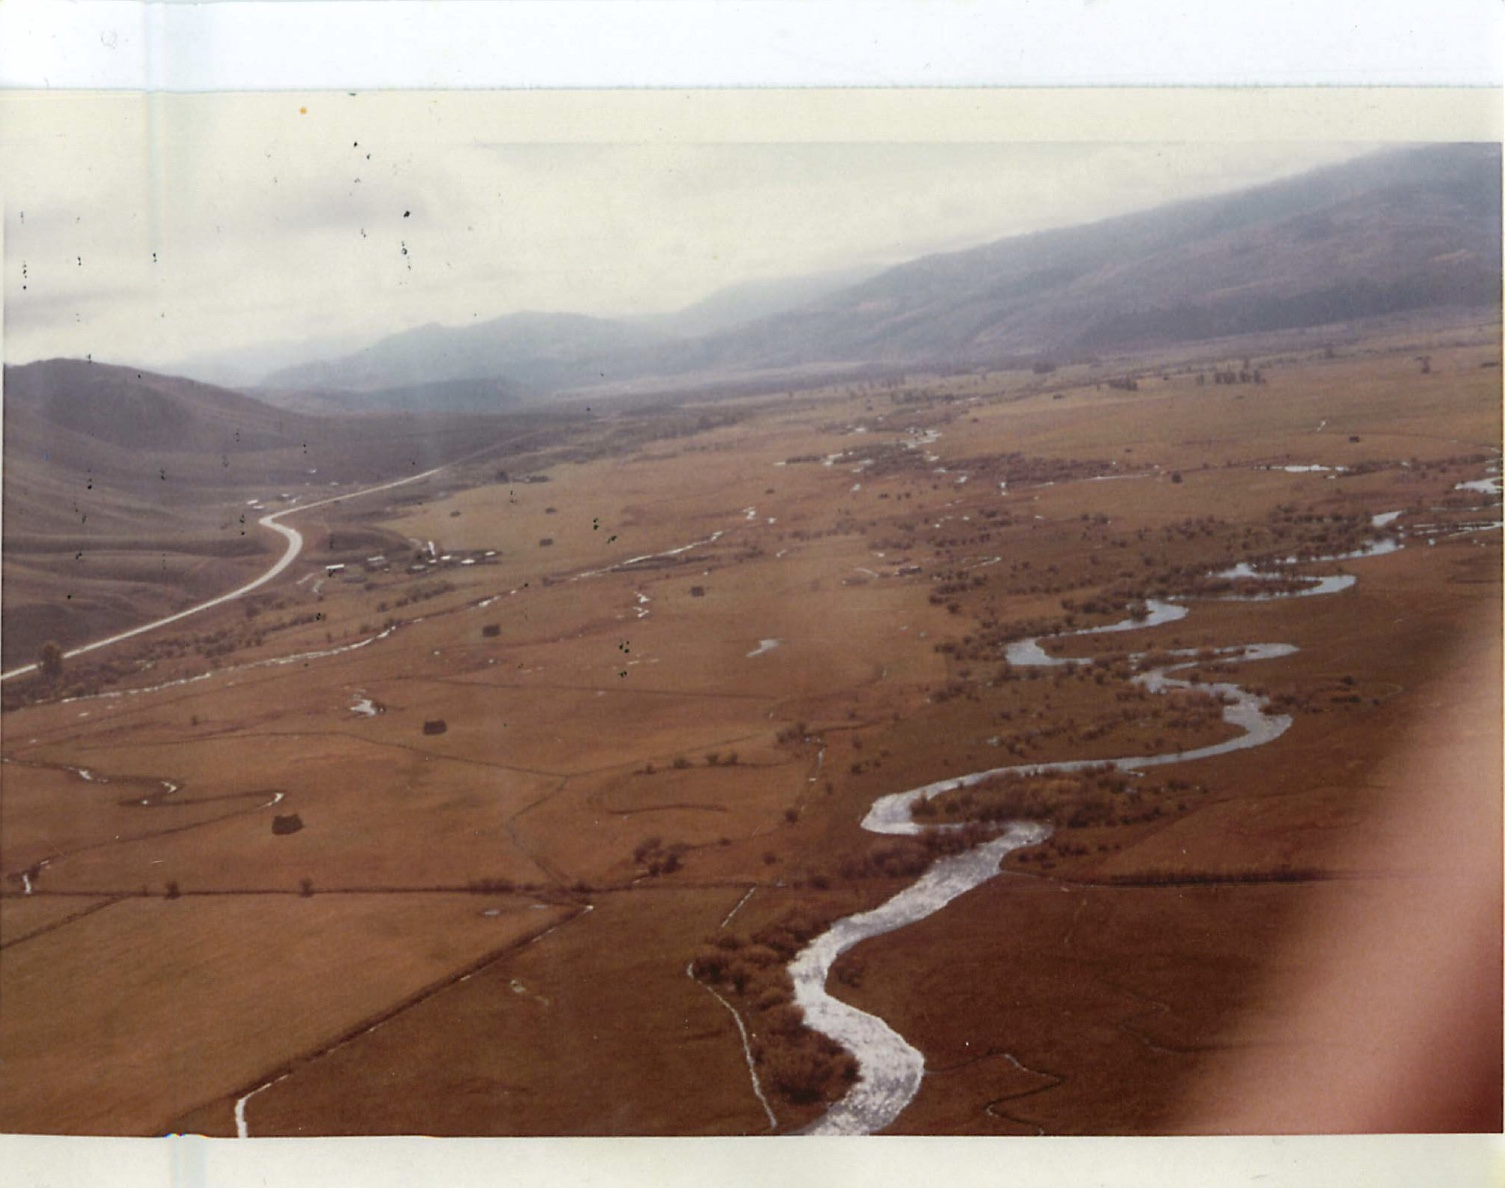 The southern border of the Jackson Hole Hereford Ranch in 1972. Notice there's no Rafter J or Melody Ranch subdivisions.